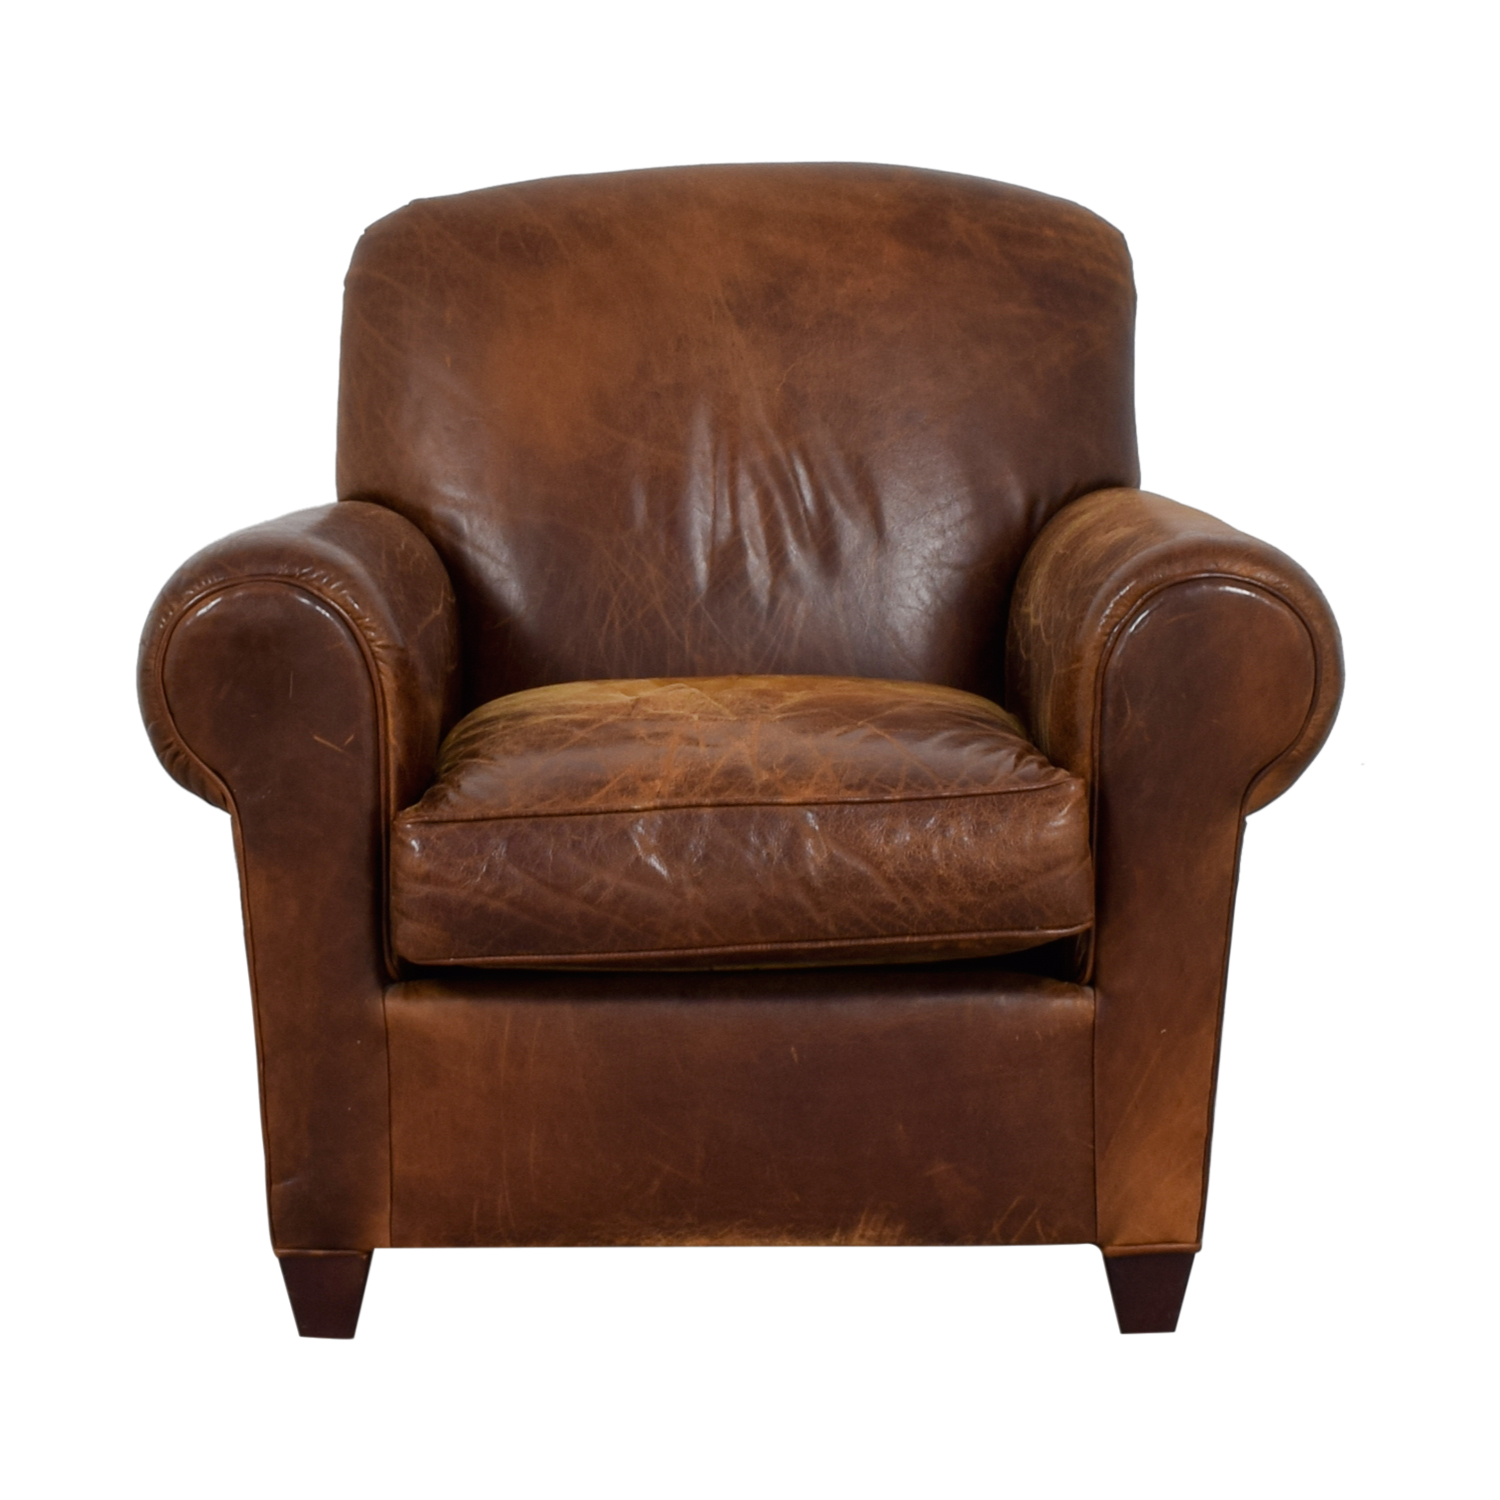 buy Crate & Barrel Brown Leather Club Chair Crate & Barrel